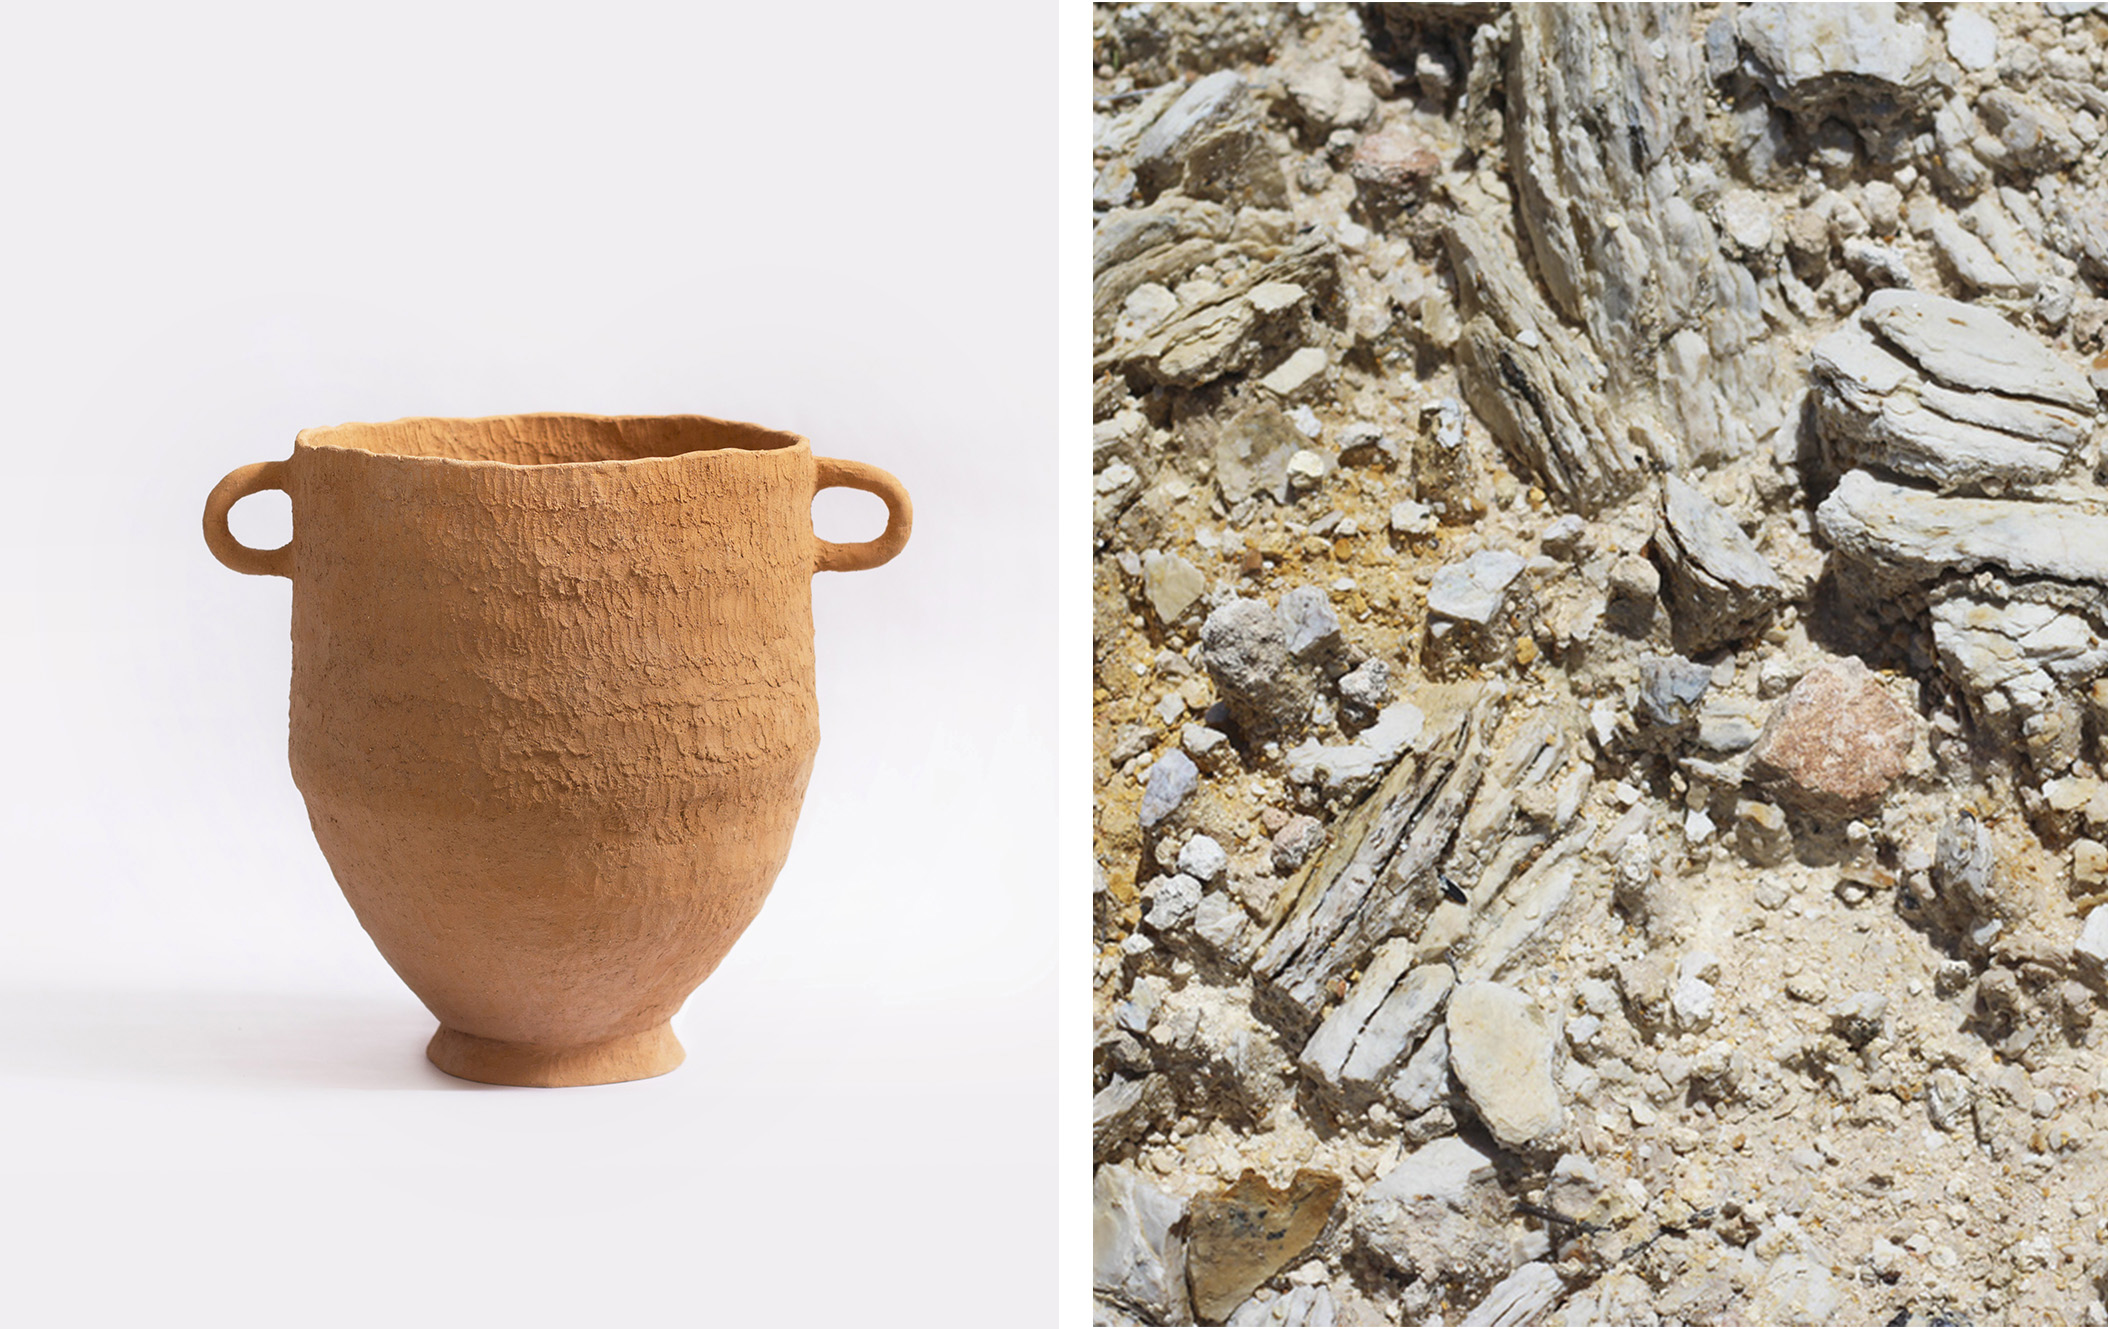 Ceramic and Pre-Hispanic Clay by Uxiii